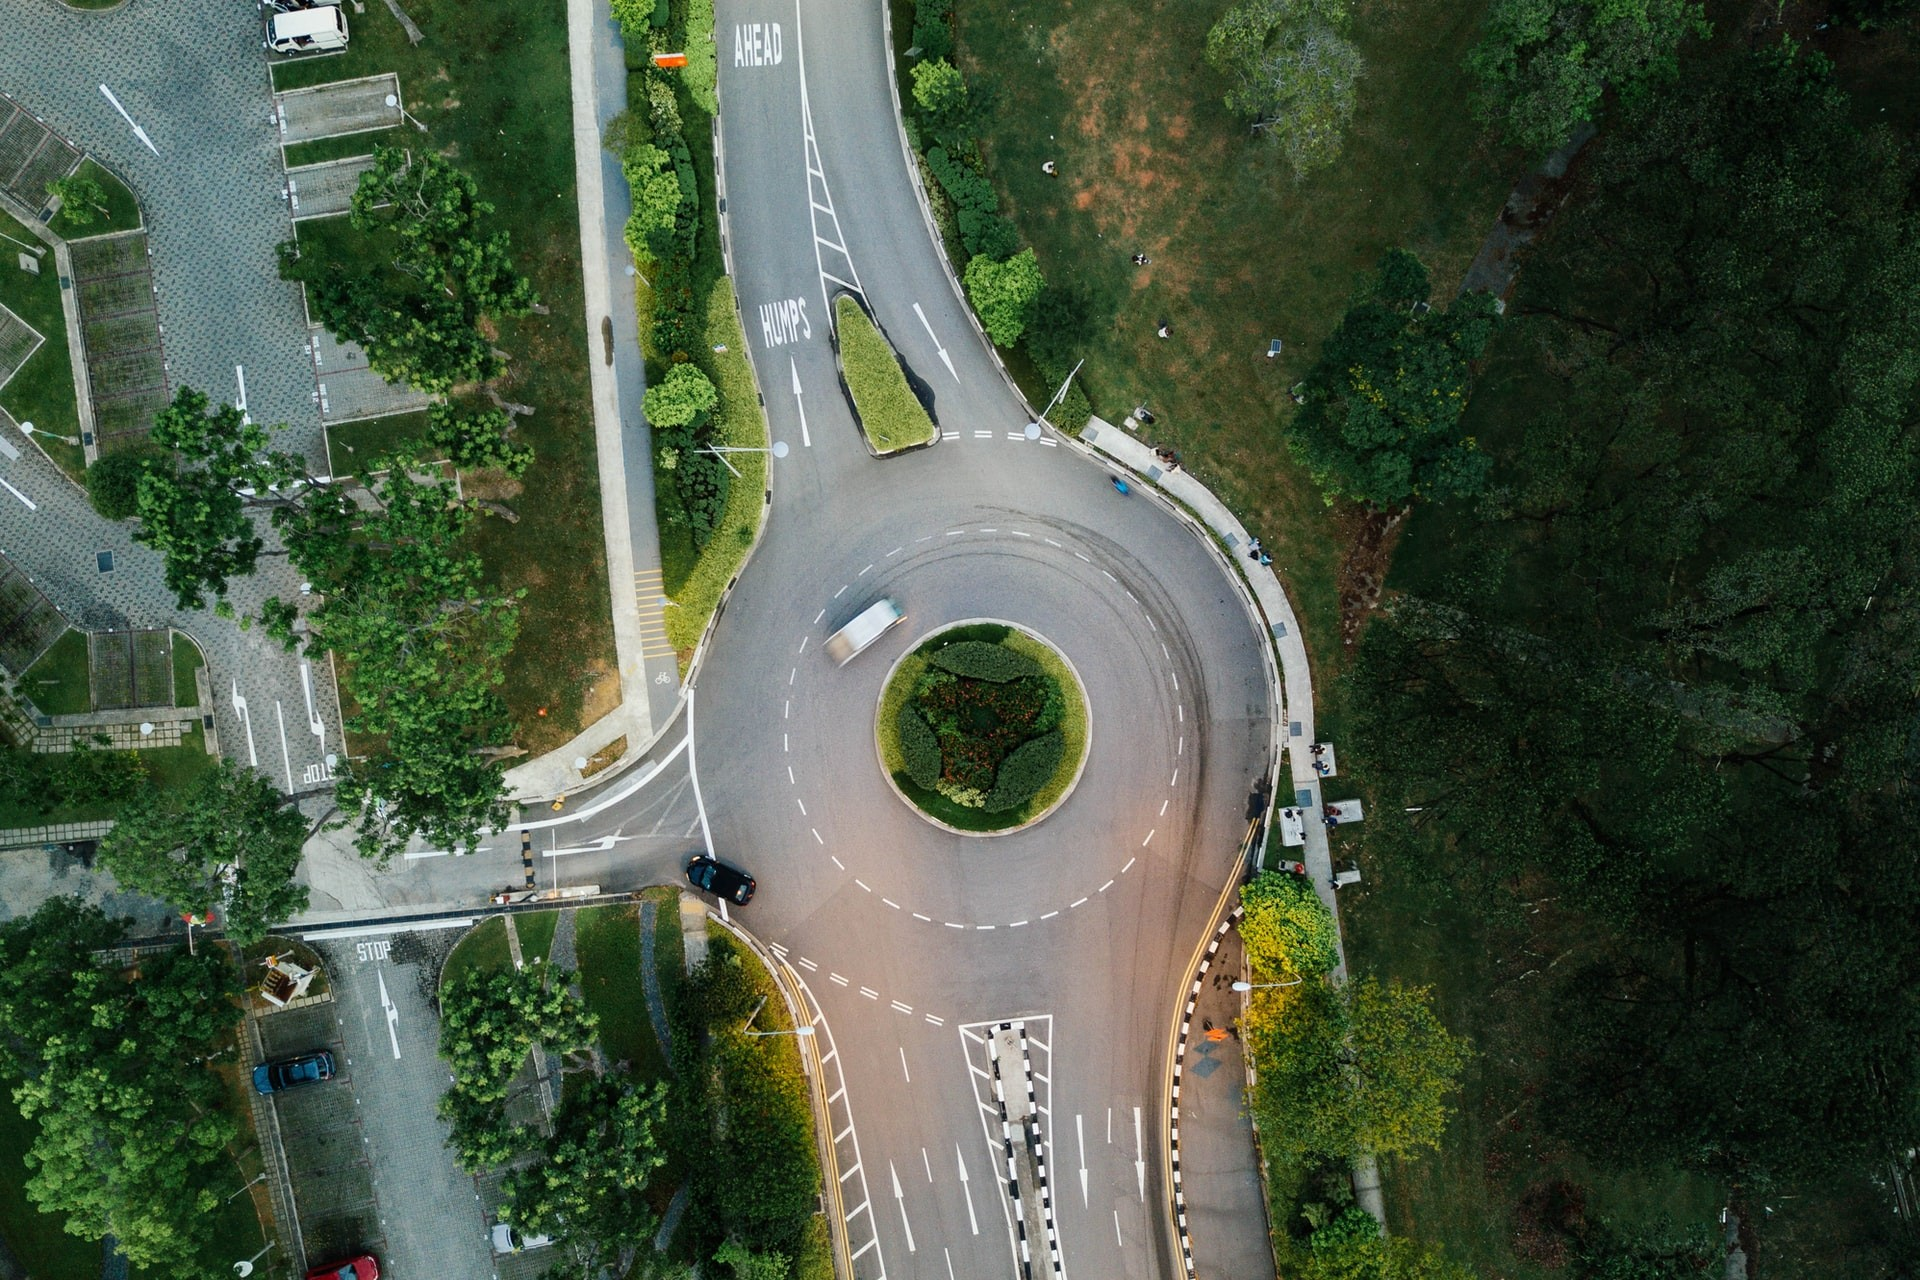 Should Toronto Have More Roundabouts?